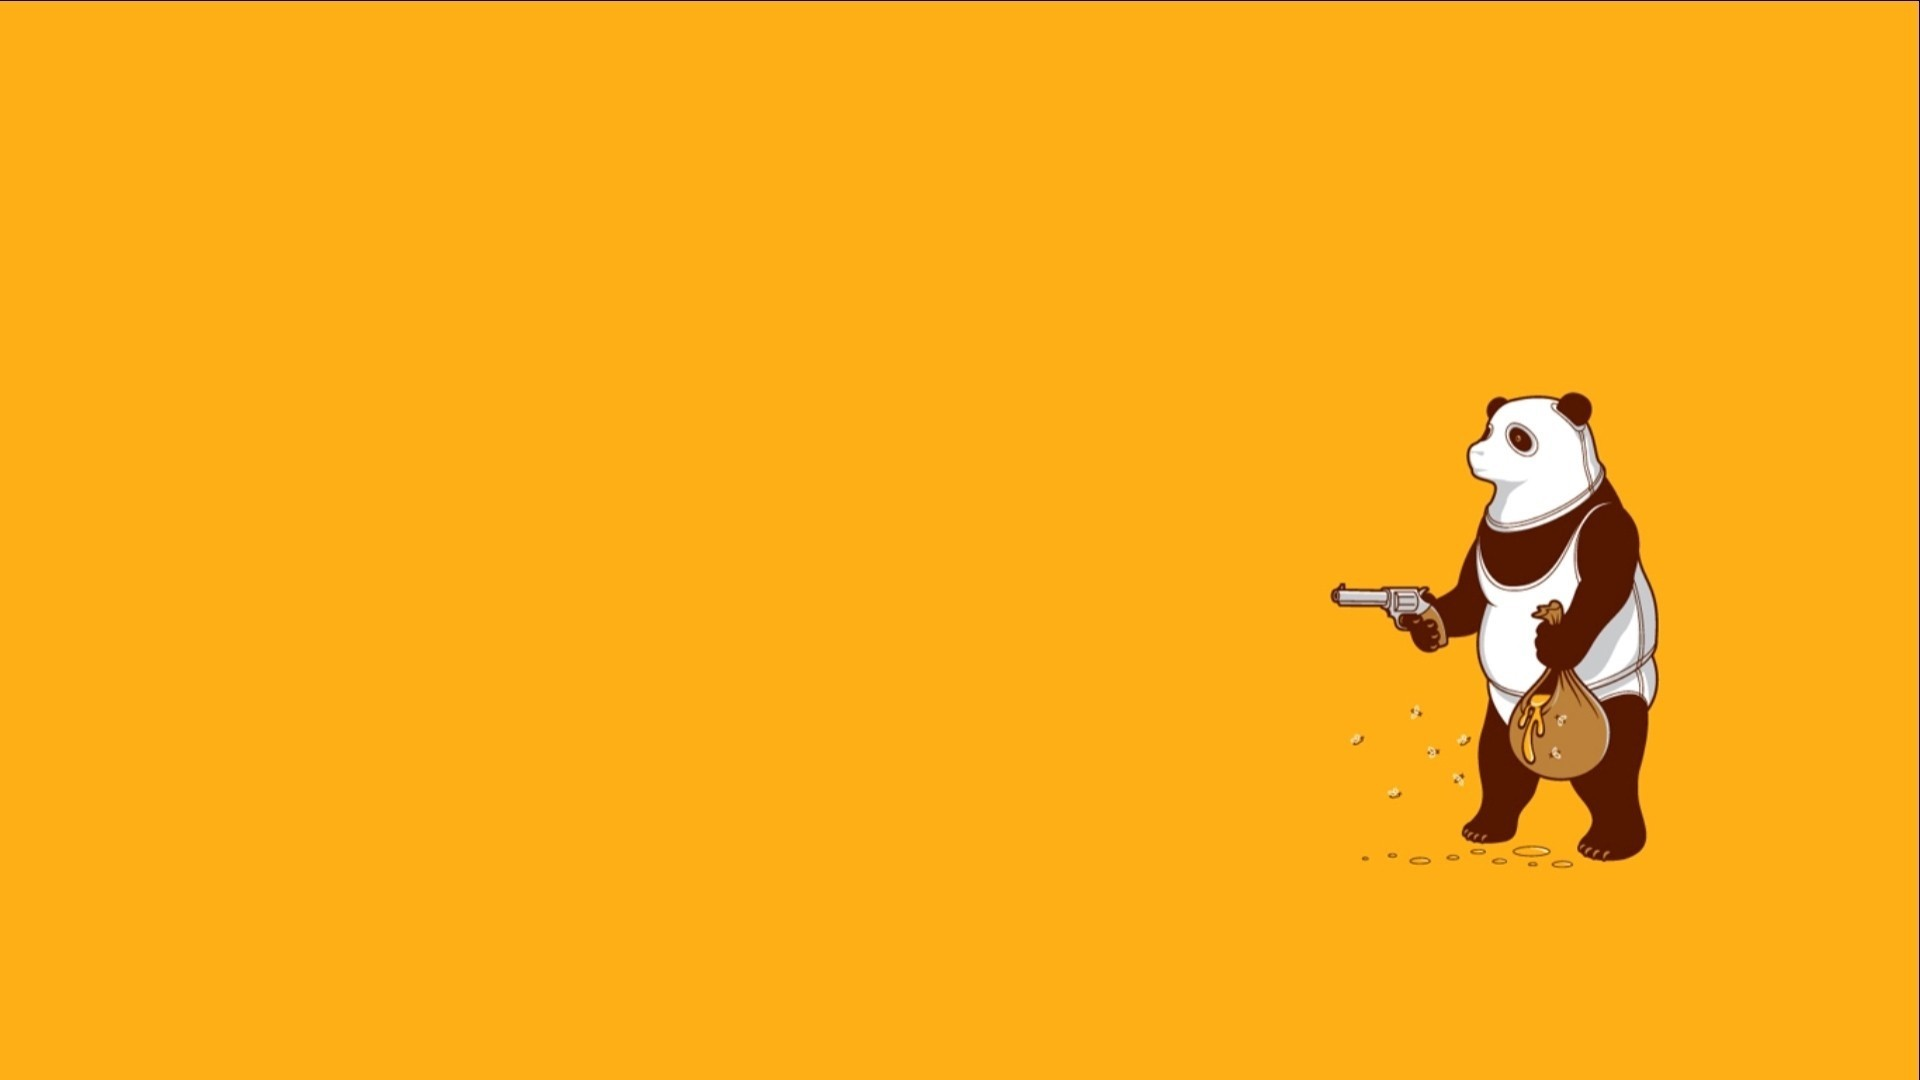 Panda Minimalist wallpaper photo hd